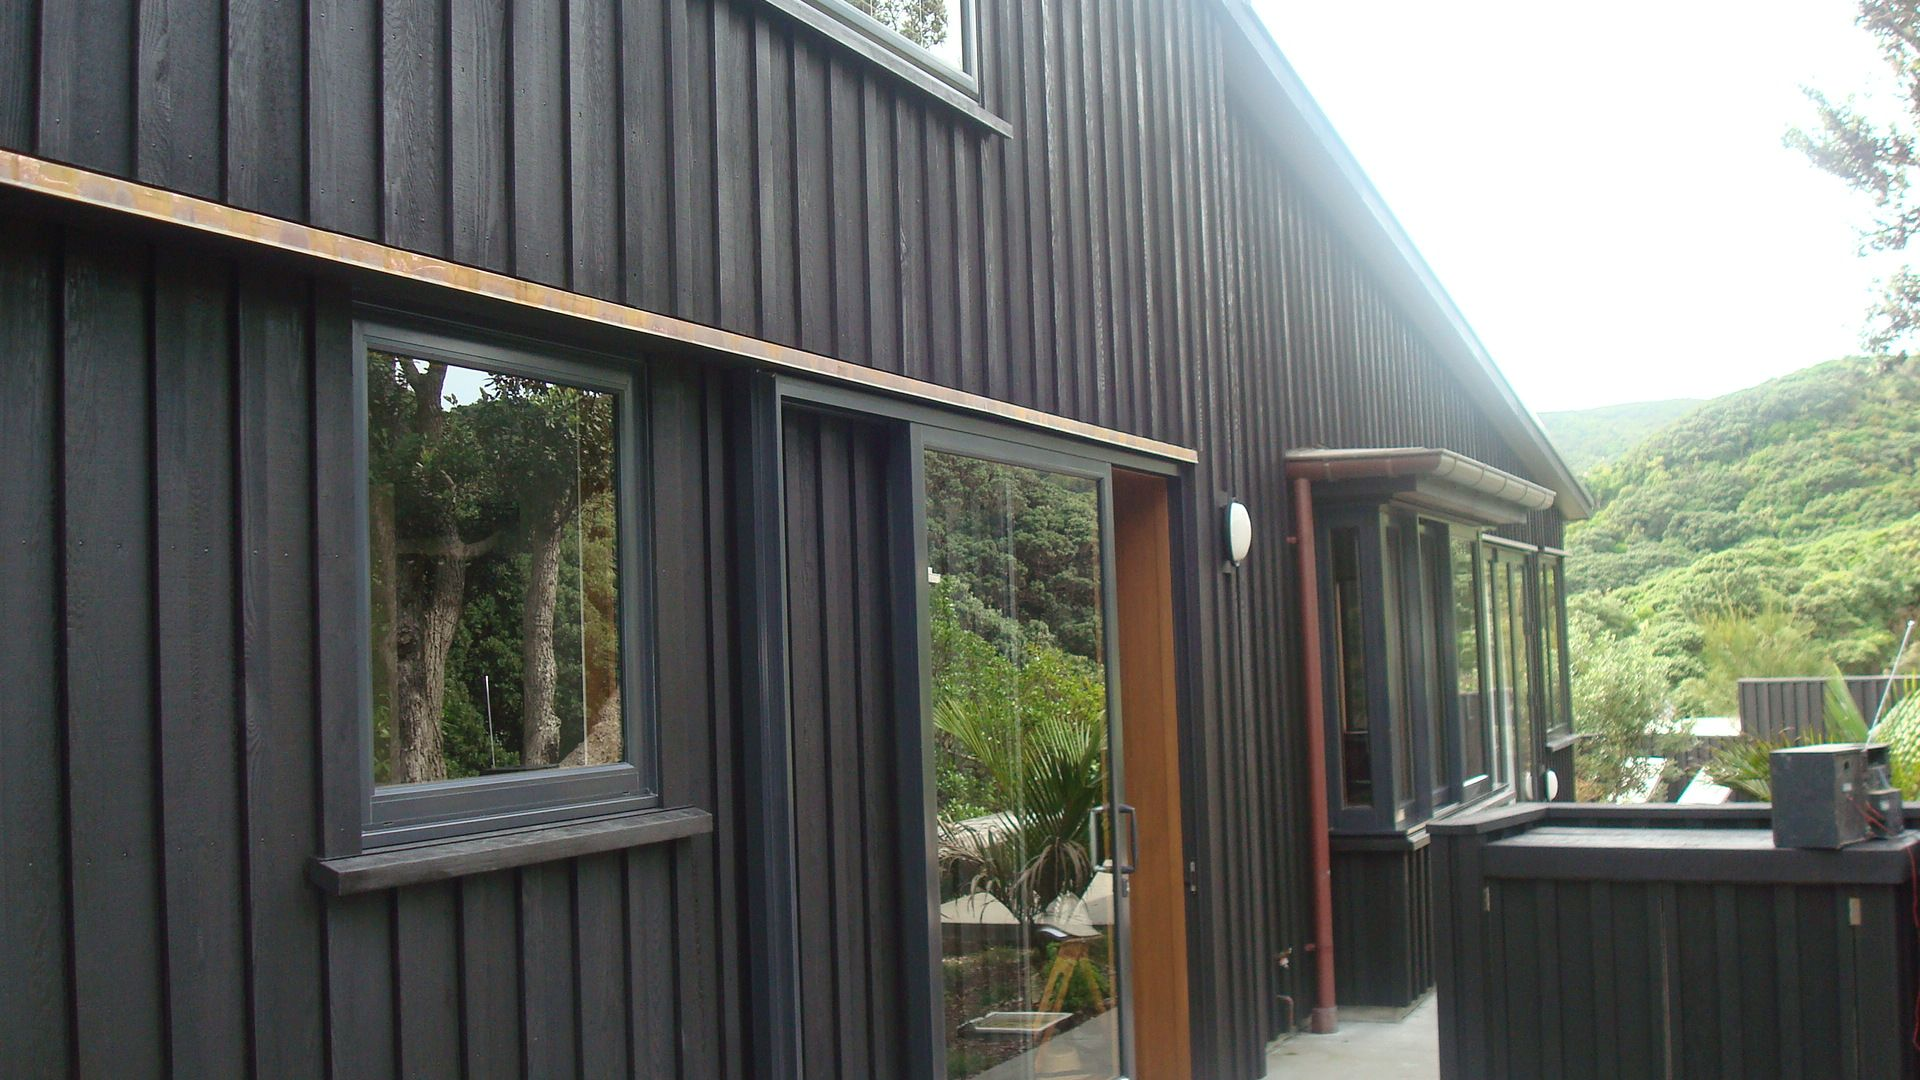 Board And Batten With Resene Stain Piha Black House Exterior Board And Batten Cladding House Cladding